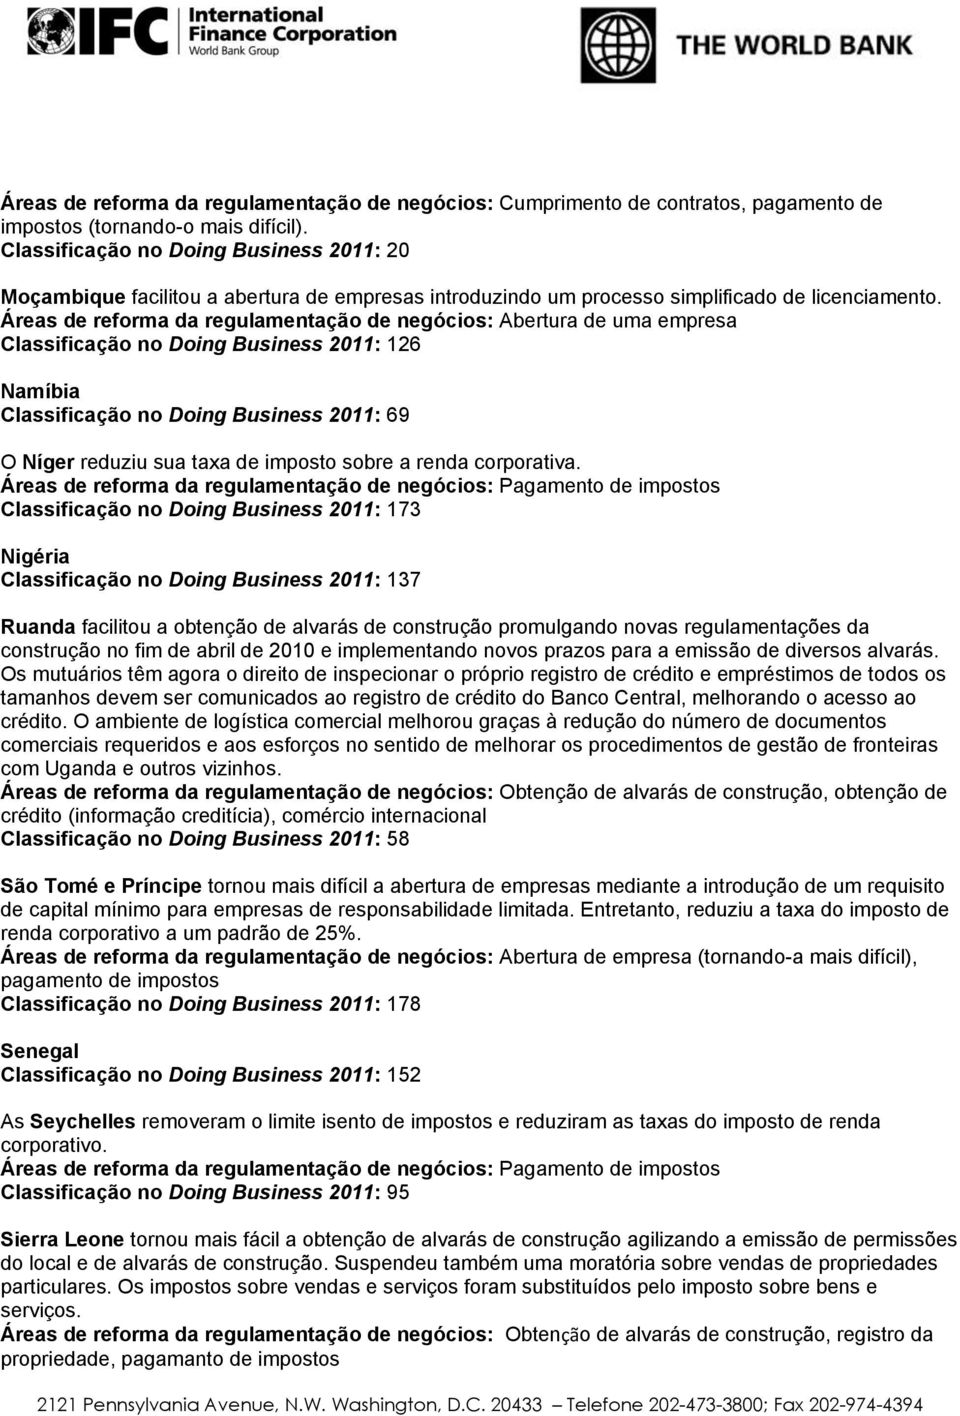 Áreas de reforma da regulamentação de negócios: Abertura de uma empresa Classificação no Doing Business 2011: 126 Namíbia Classificação no Doing Business 2011: 69 O Níger reduziu sua taxa de imposto